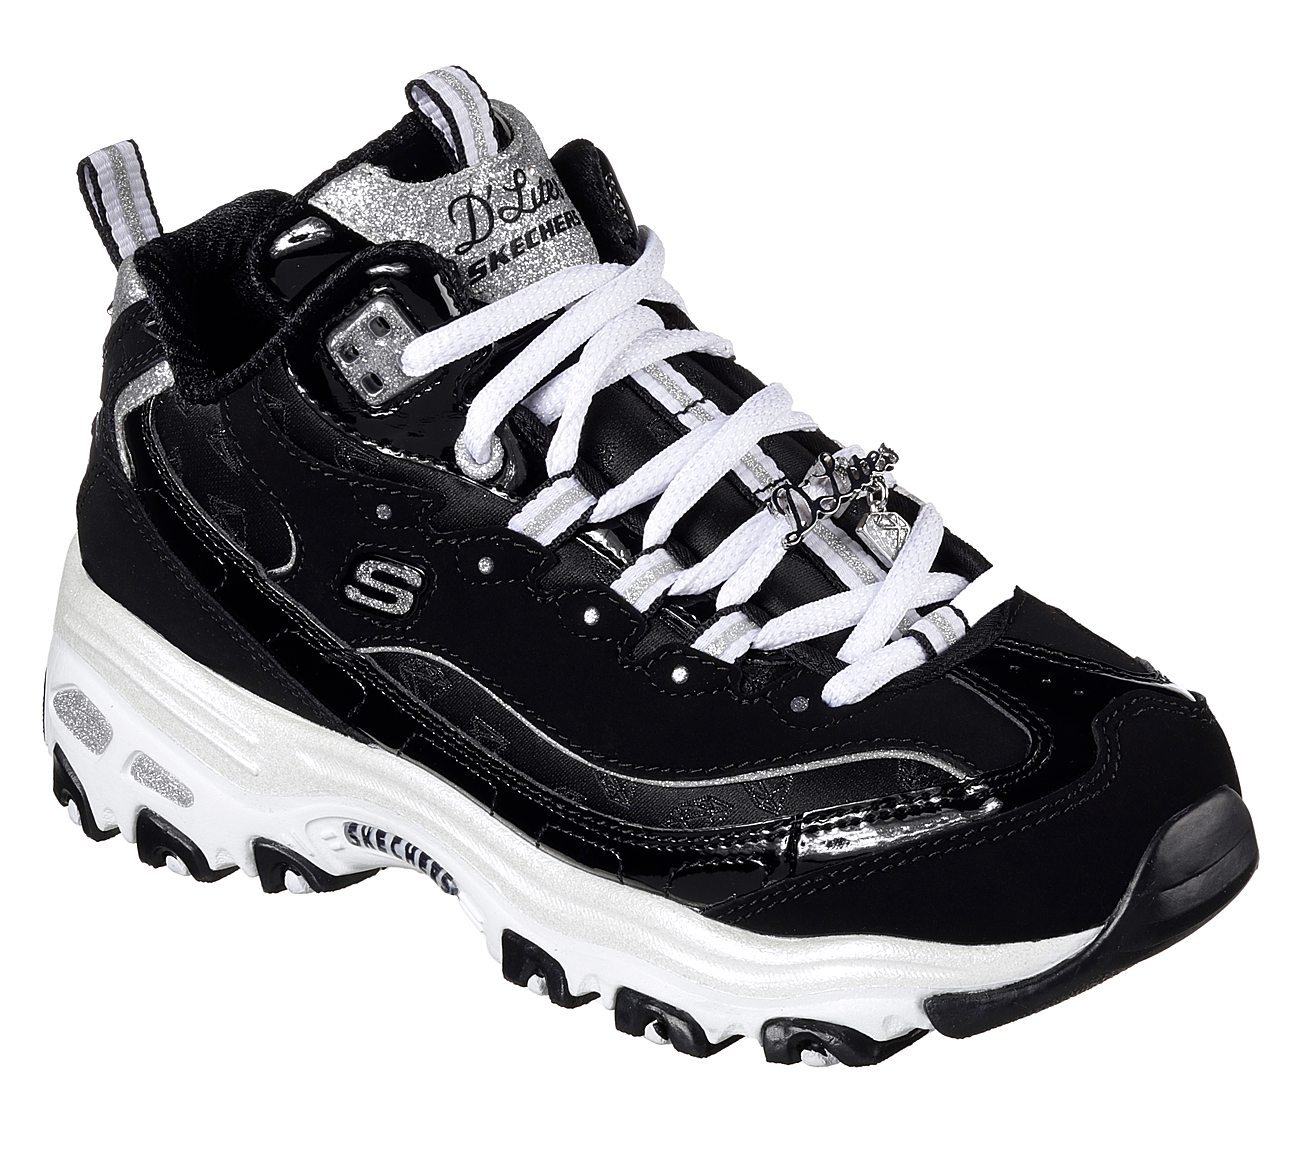 Question: Are Skechers Really Back